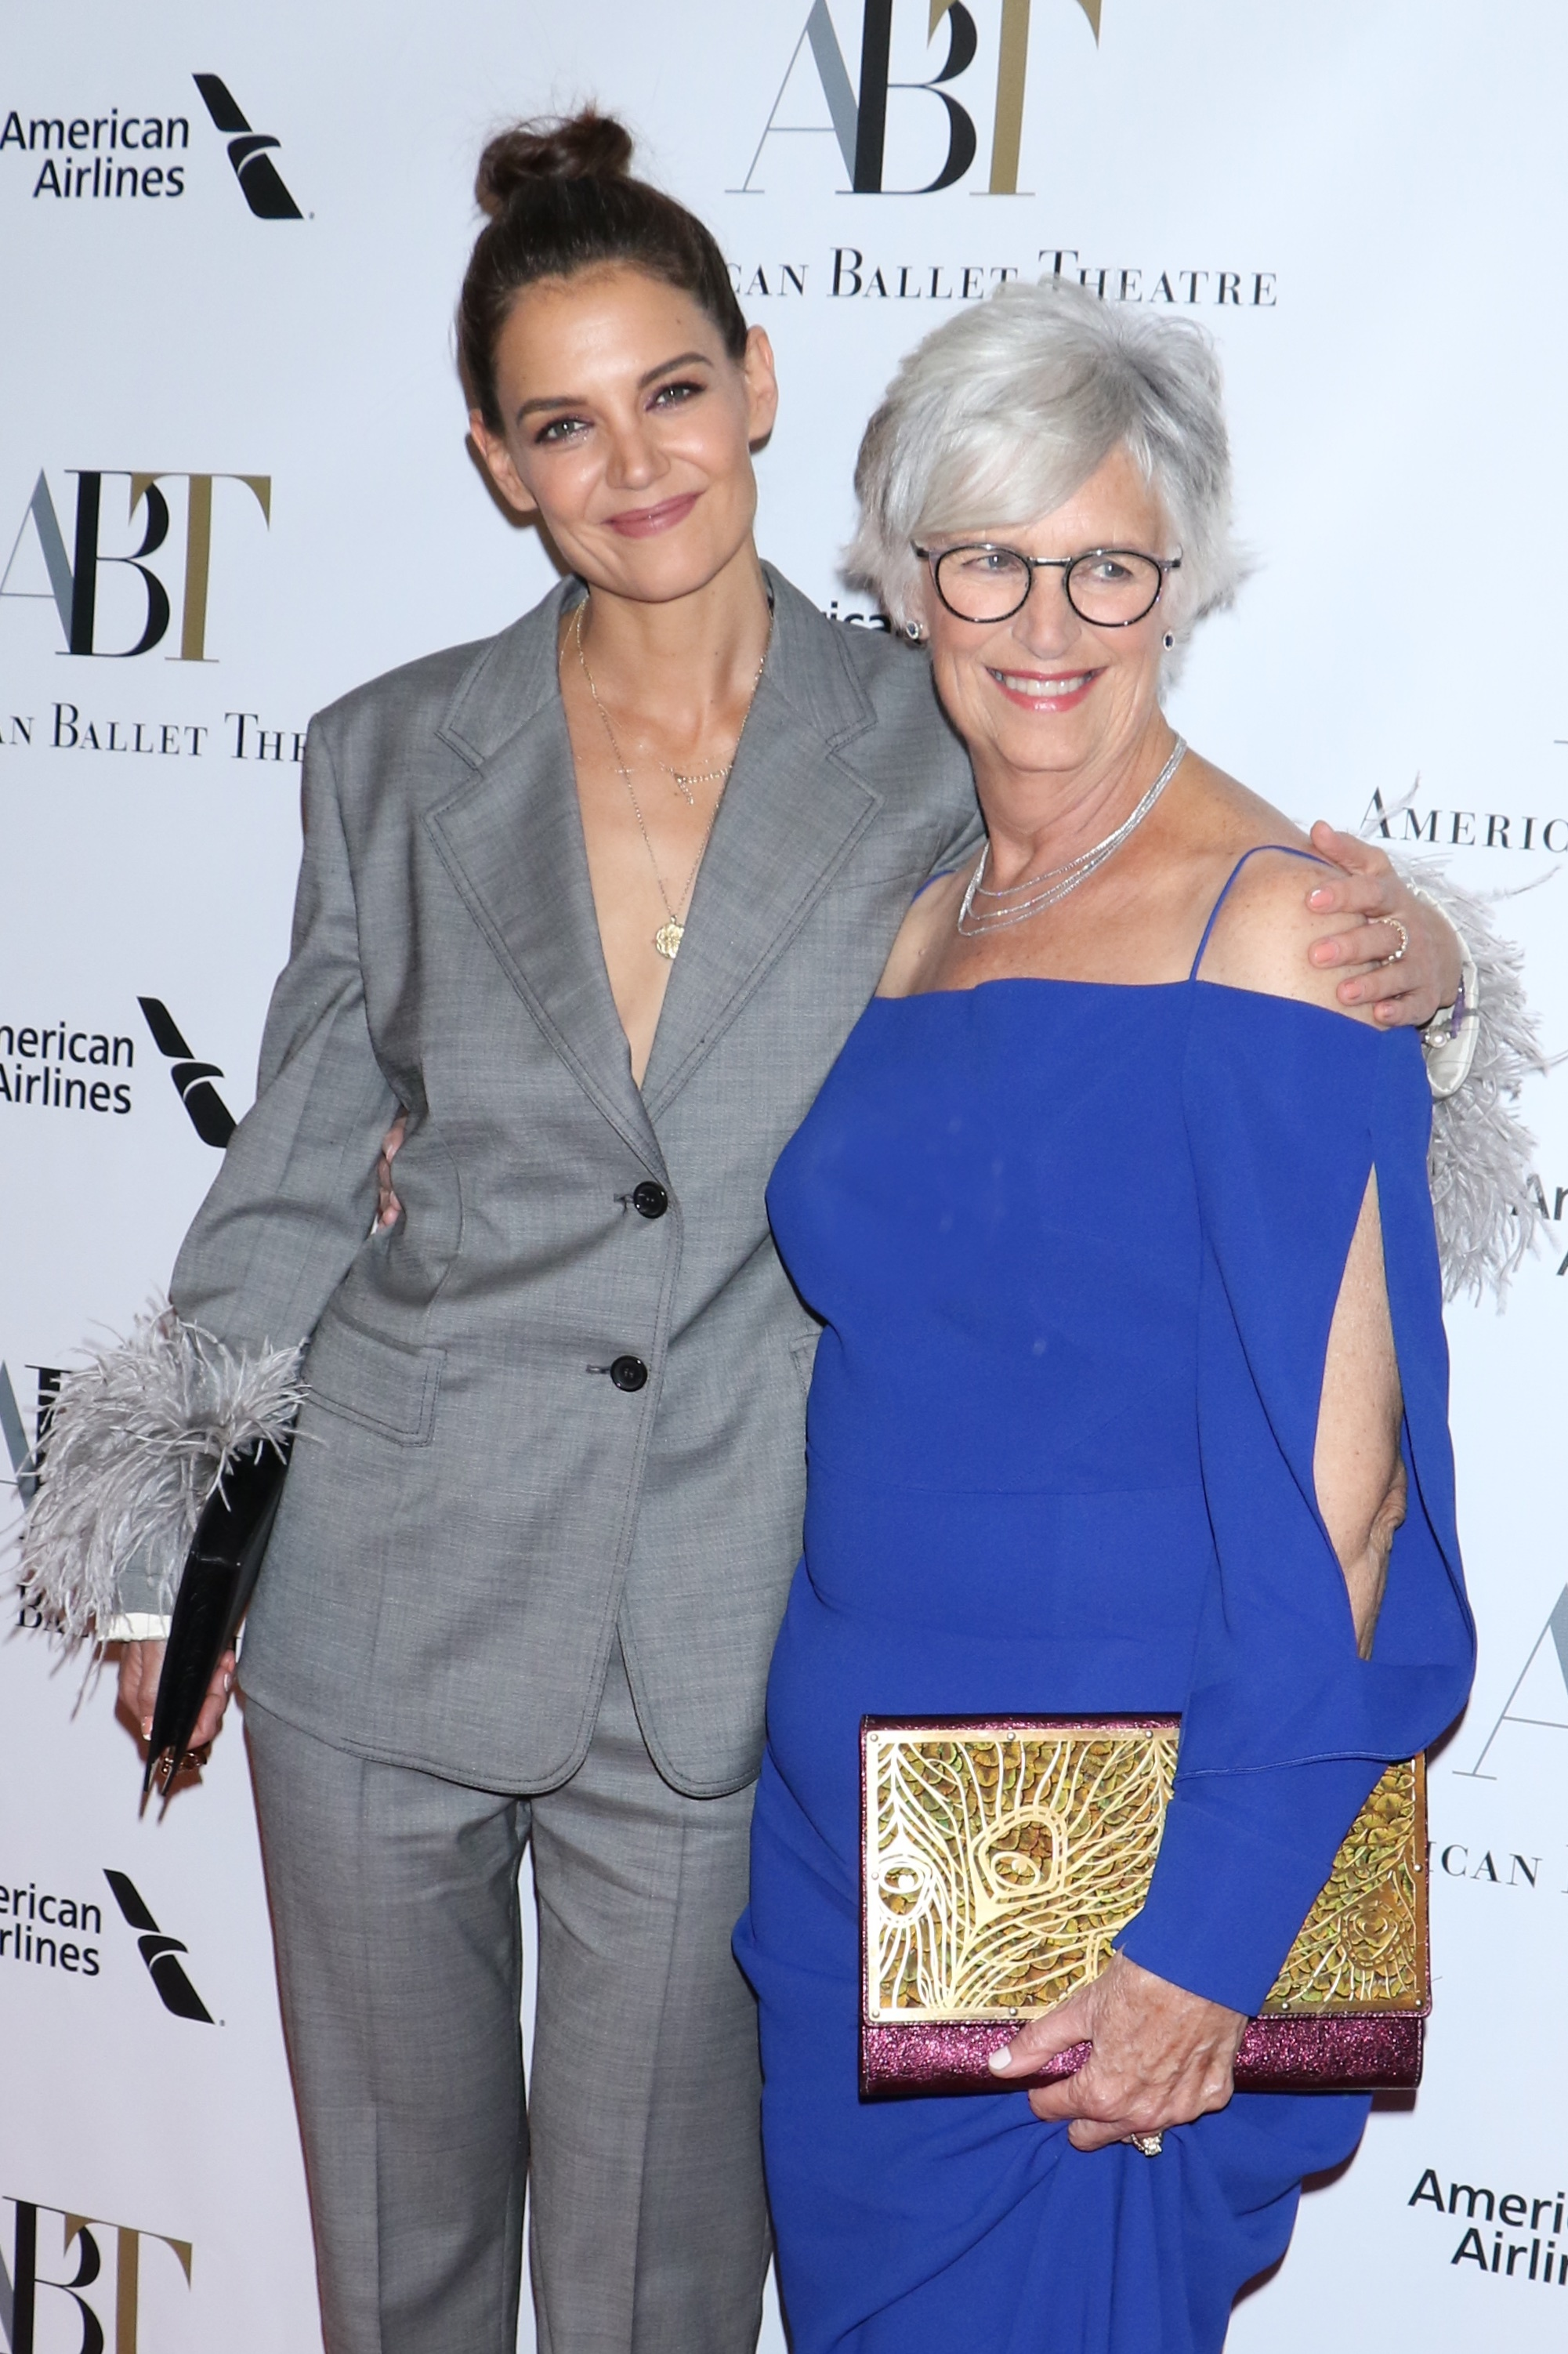 Katie Holmes and Kathleen Holmes attend the American Ballet Theatre Gala in New York City on Oct. 17, 2018.